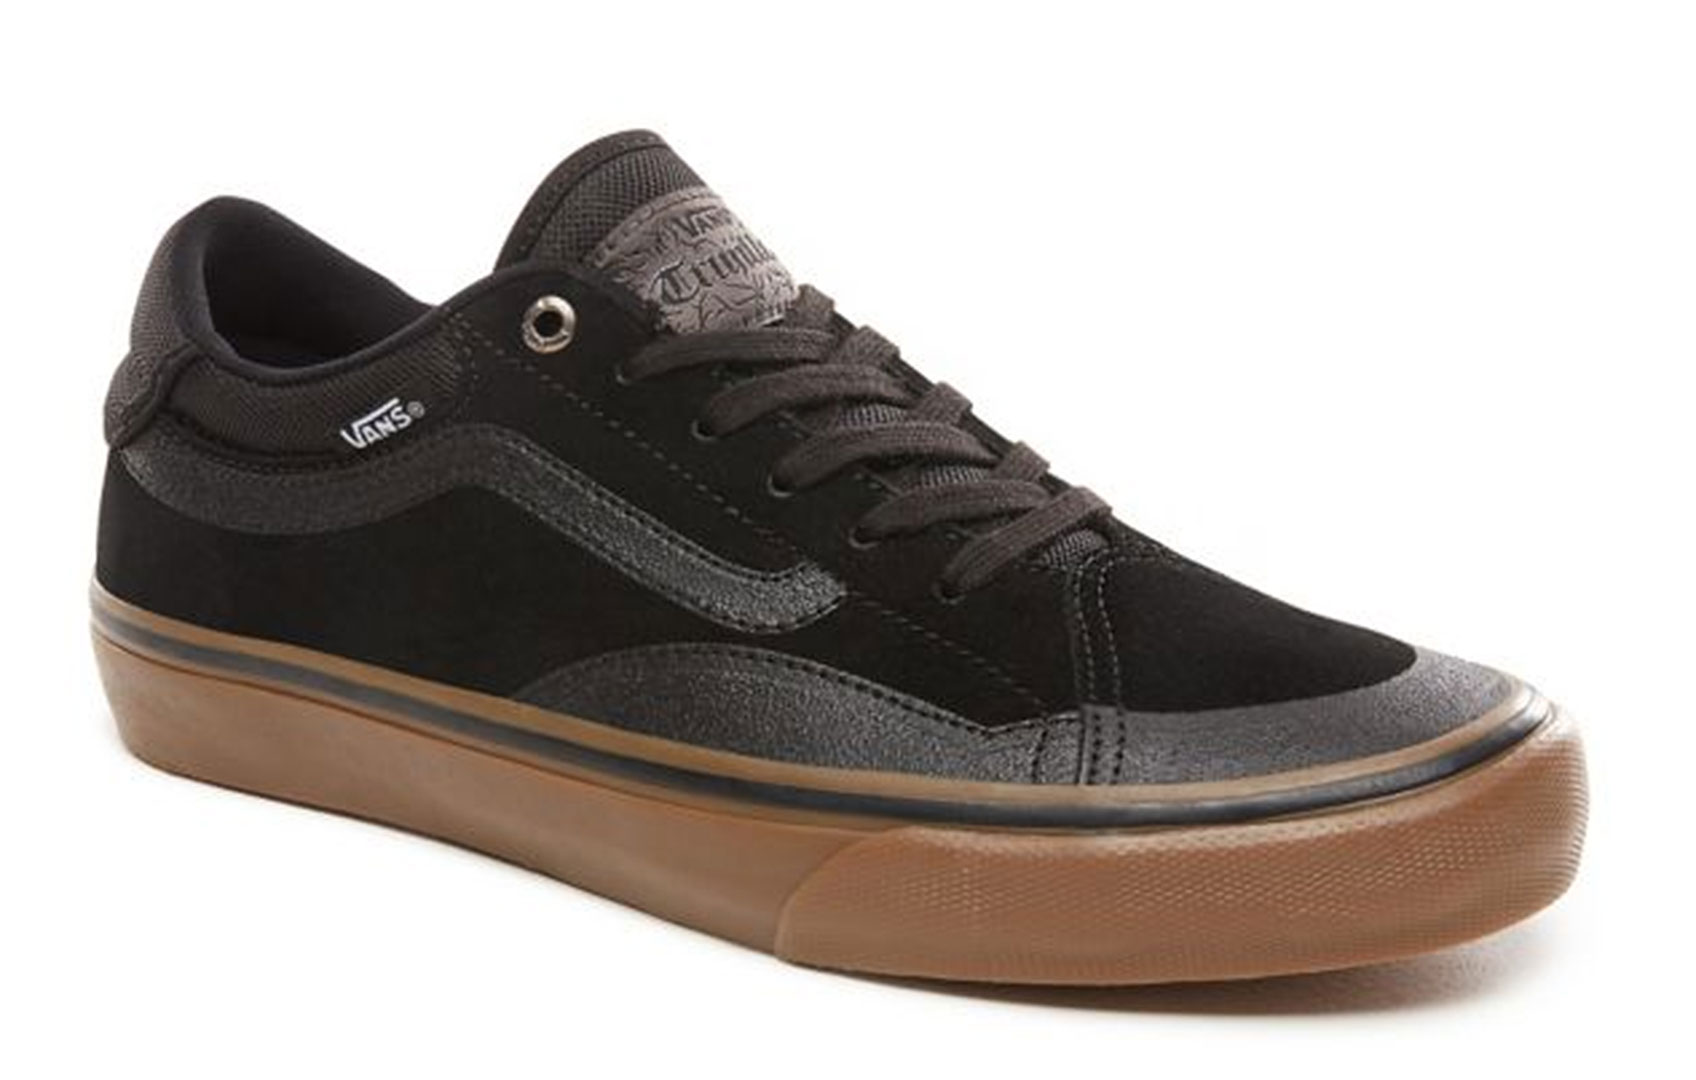 4643dd959b8cd6 Vans TNT ADVANCED PROTOTYPE Shoe 2019 black gum